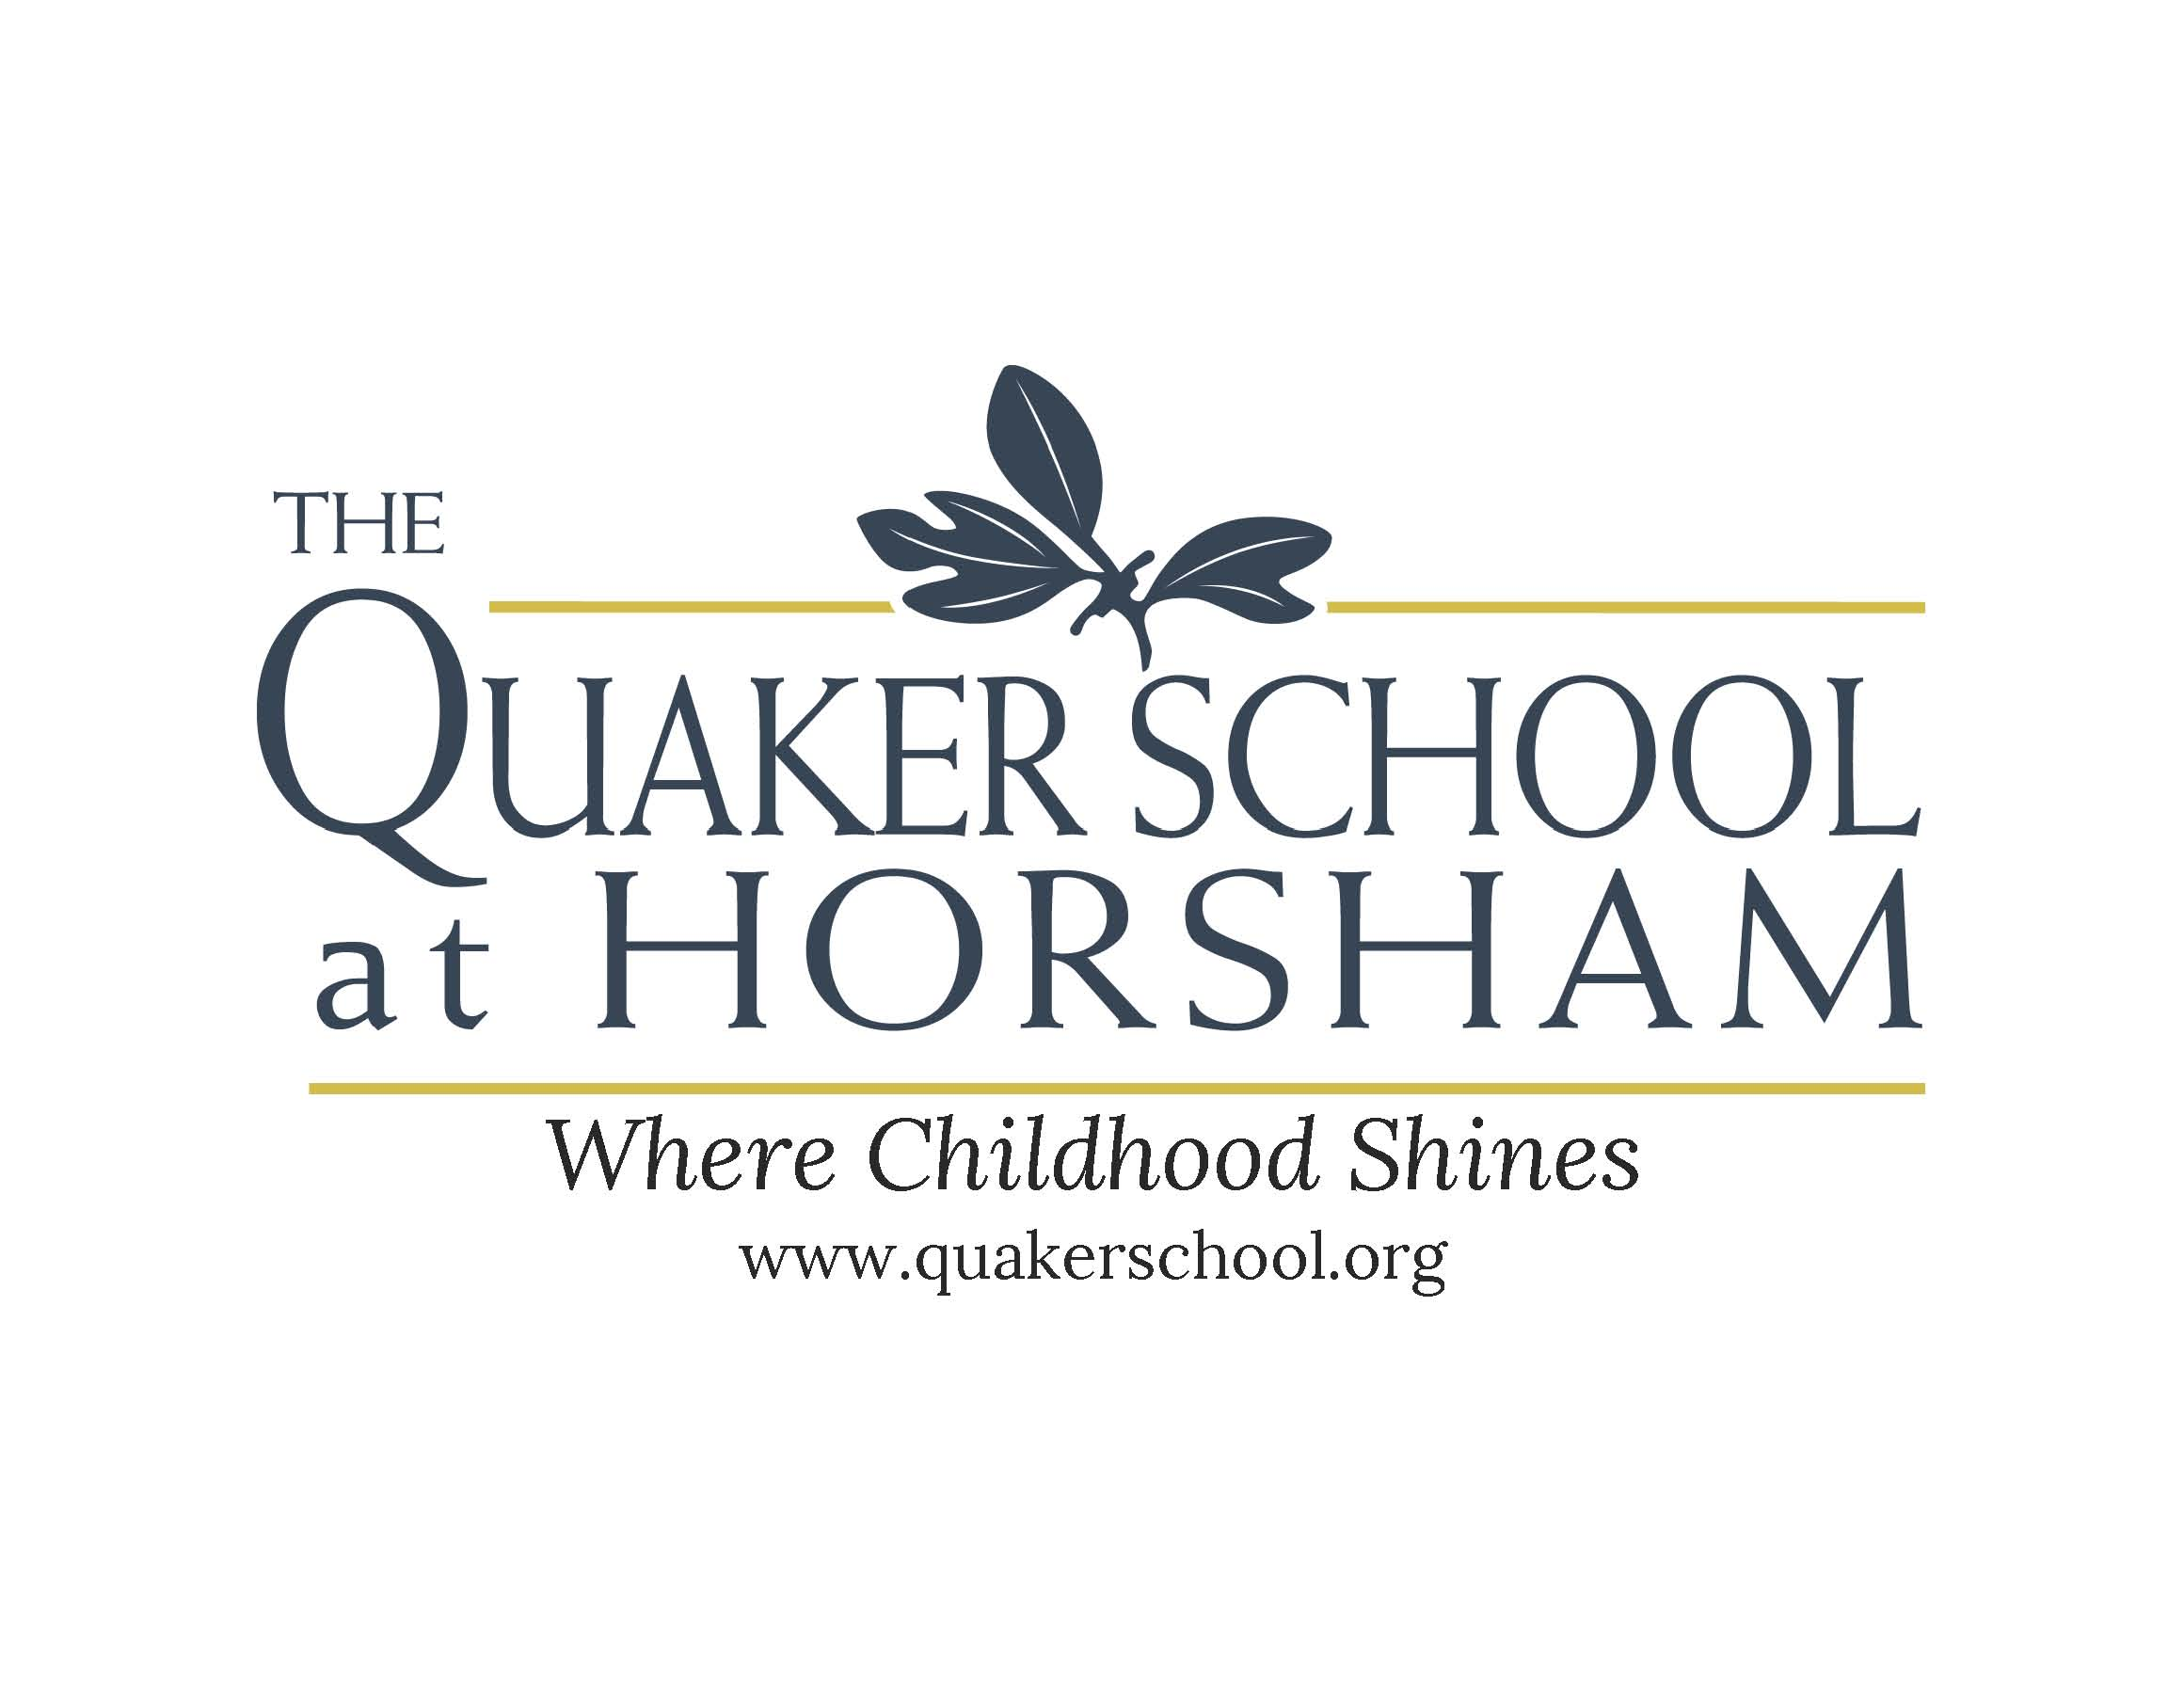 *Service Provider Sponsor* The Quaker School at Horsham